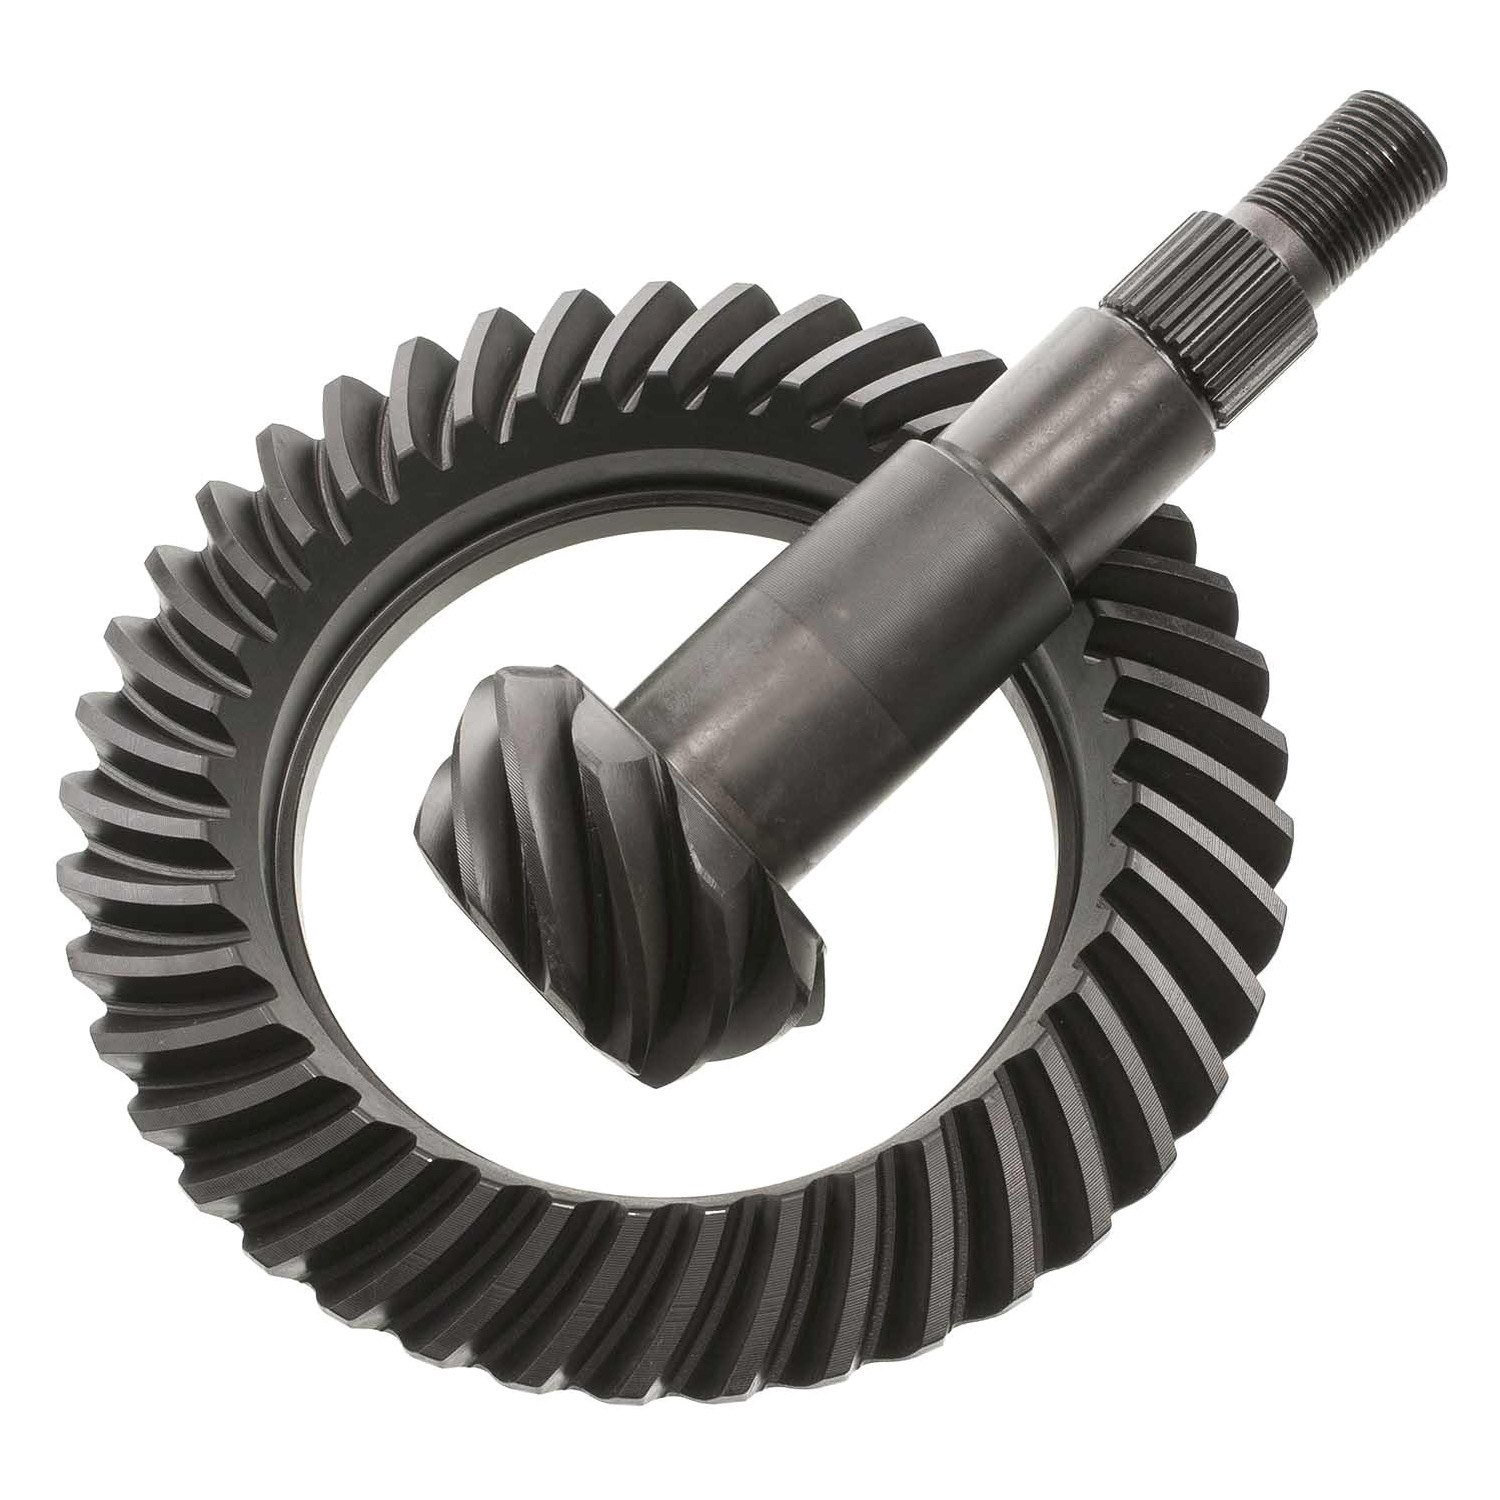 Motive Gear C8-456 - Front Ring and Pinion Gear Set